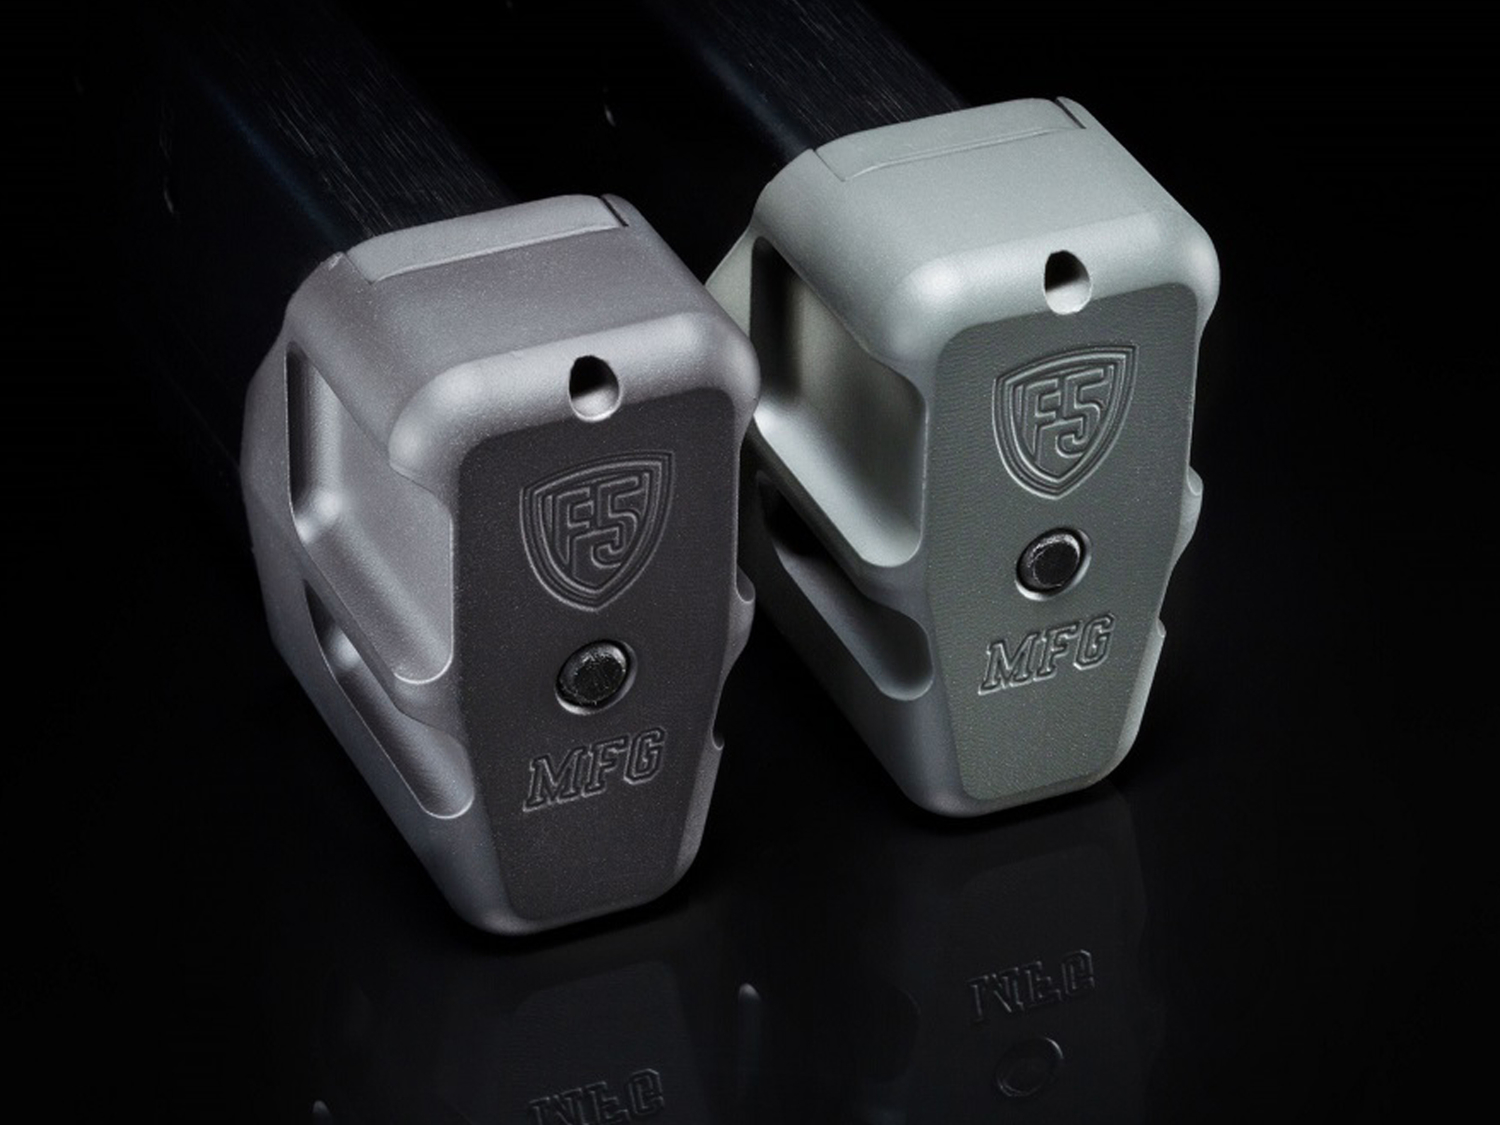 RUGER 57 +5 PACKAGE (MAGAZINE EXTENSION, MAGAZINE & SLIDE RELEASE)